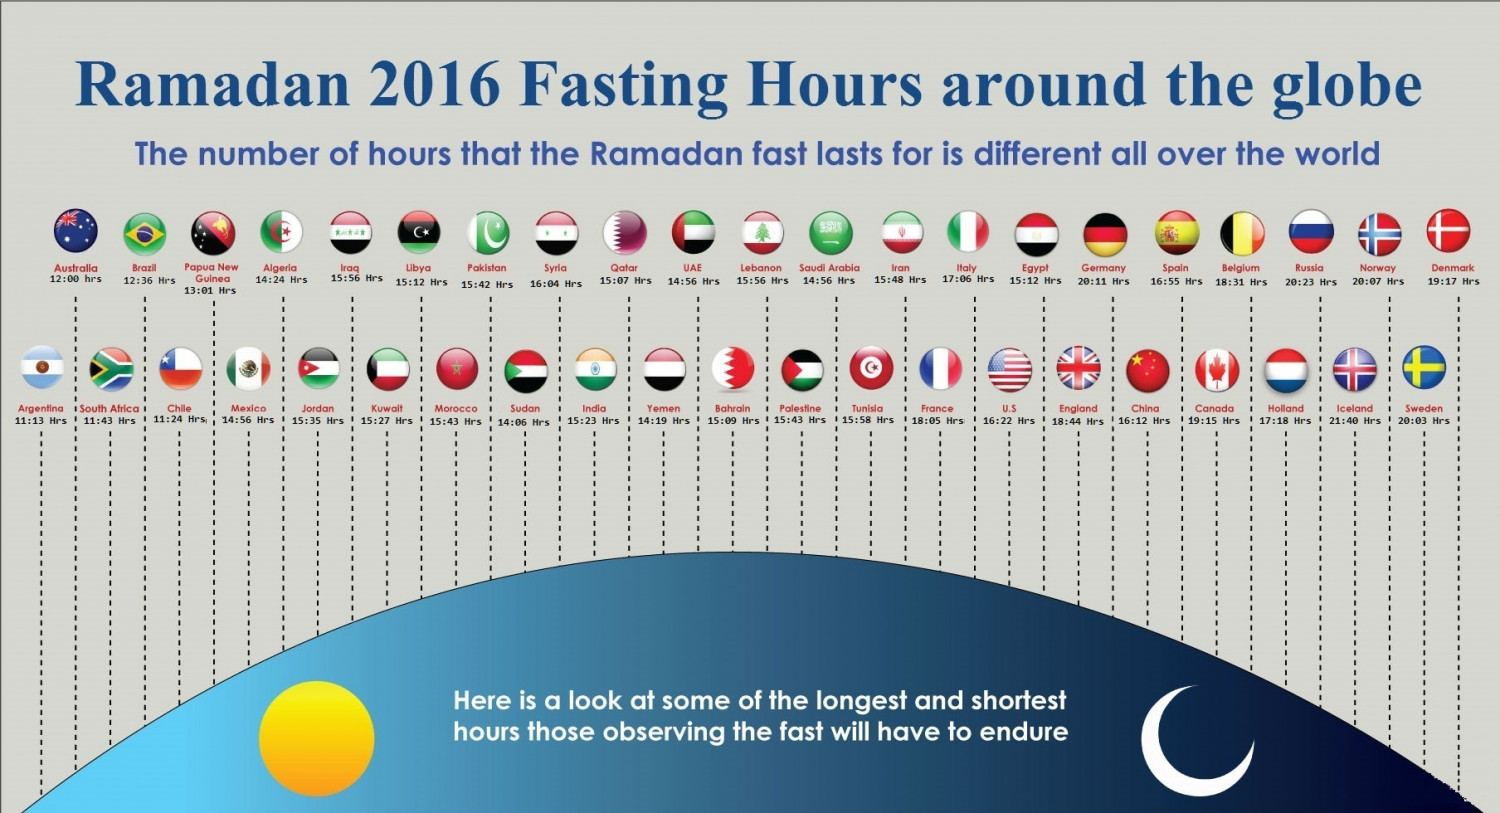 Ramadan 2016 Fasting Hours for Countries around the globe Infographic